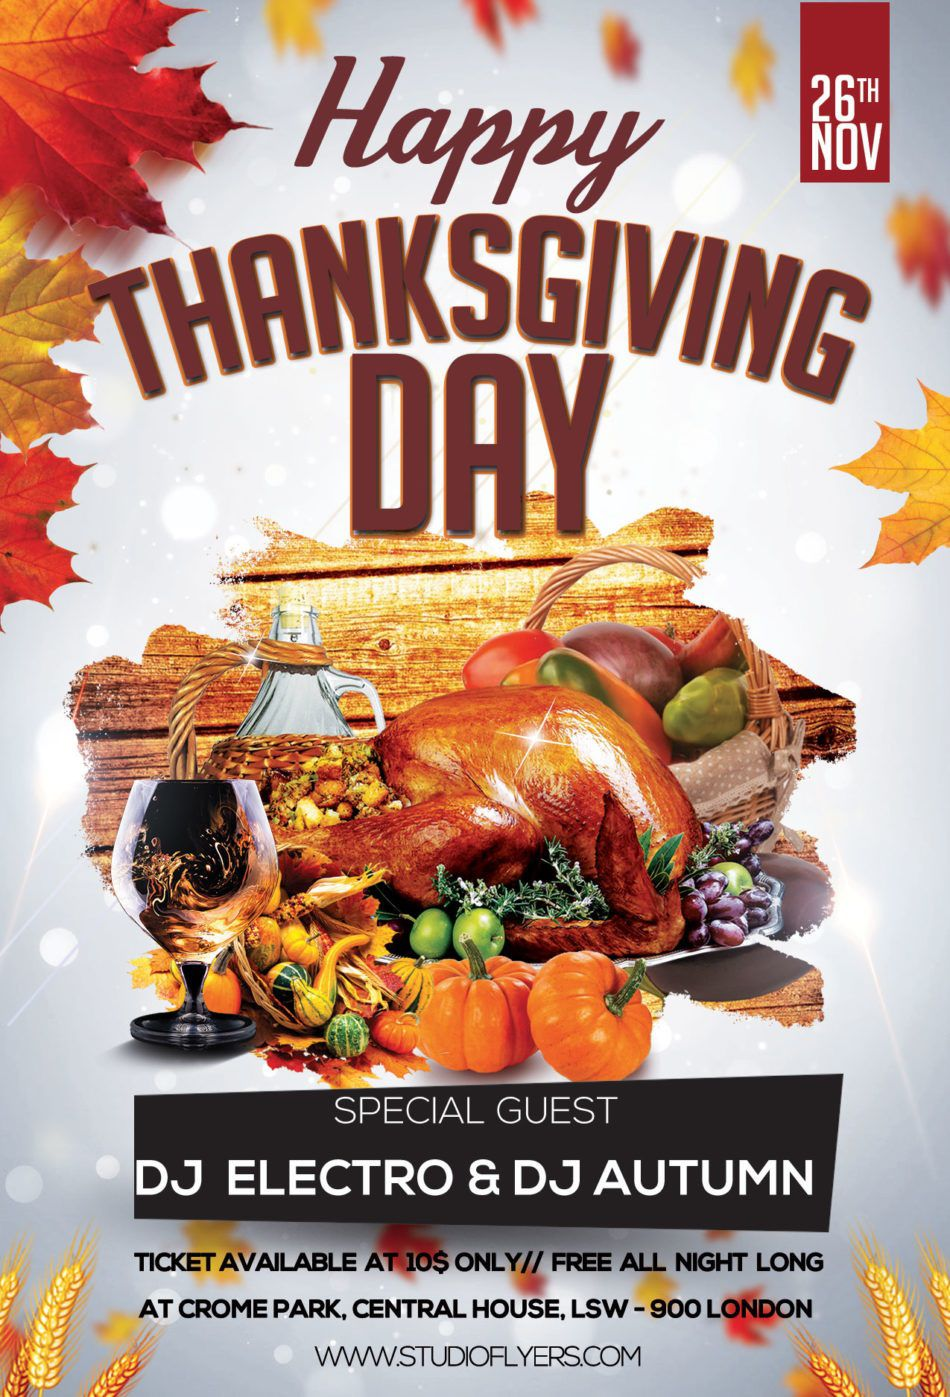 007 Fantastic Thanksgiving Flyer Template Free Example  Food Drive PartyFull